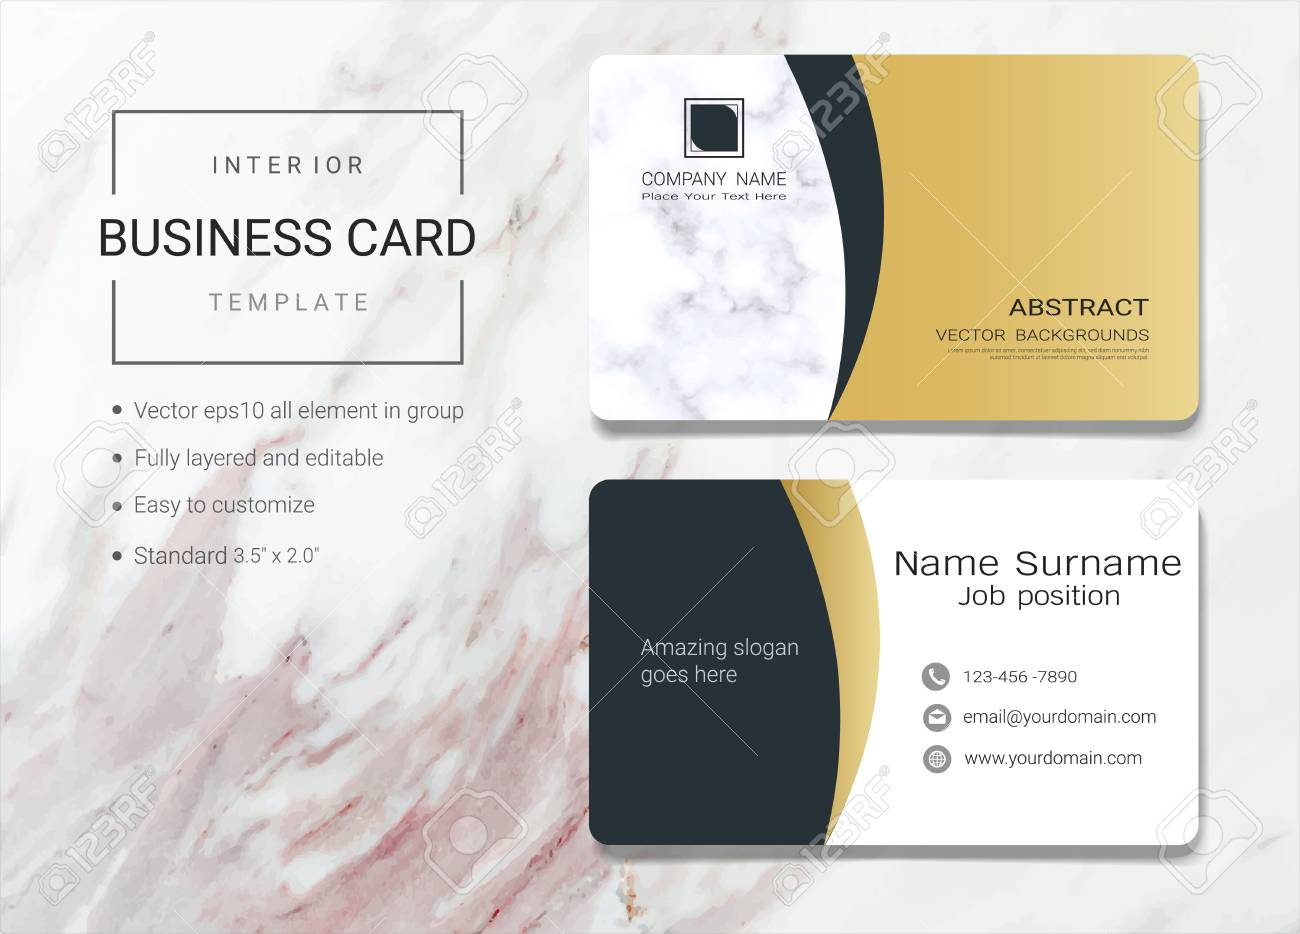 Interior business card or name card template simple style also interior business card or name card template simple style also modern and elegant with marbling accmission Images